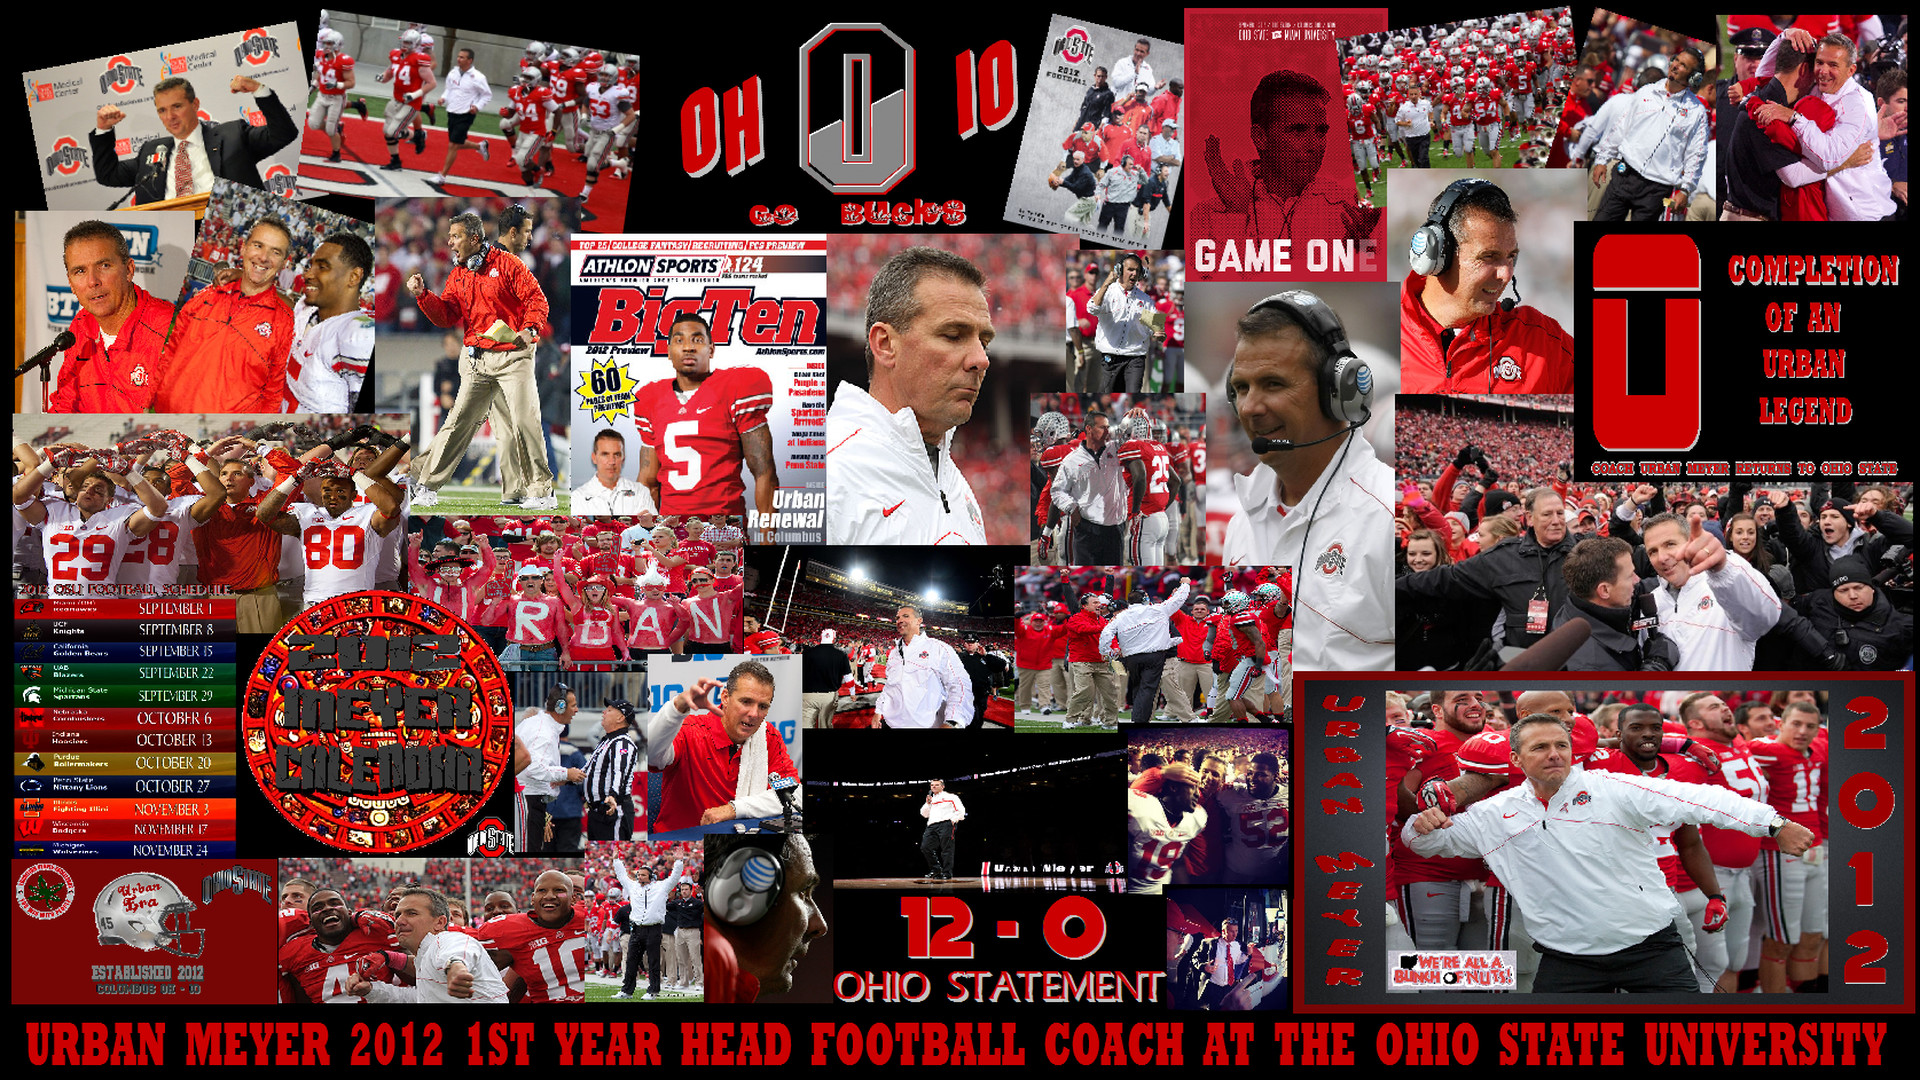 1920x1080 Ohio State Buckeyes Football Backgrounds Download | Page 2 of 3 |  wallpaper.wiki